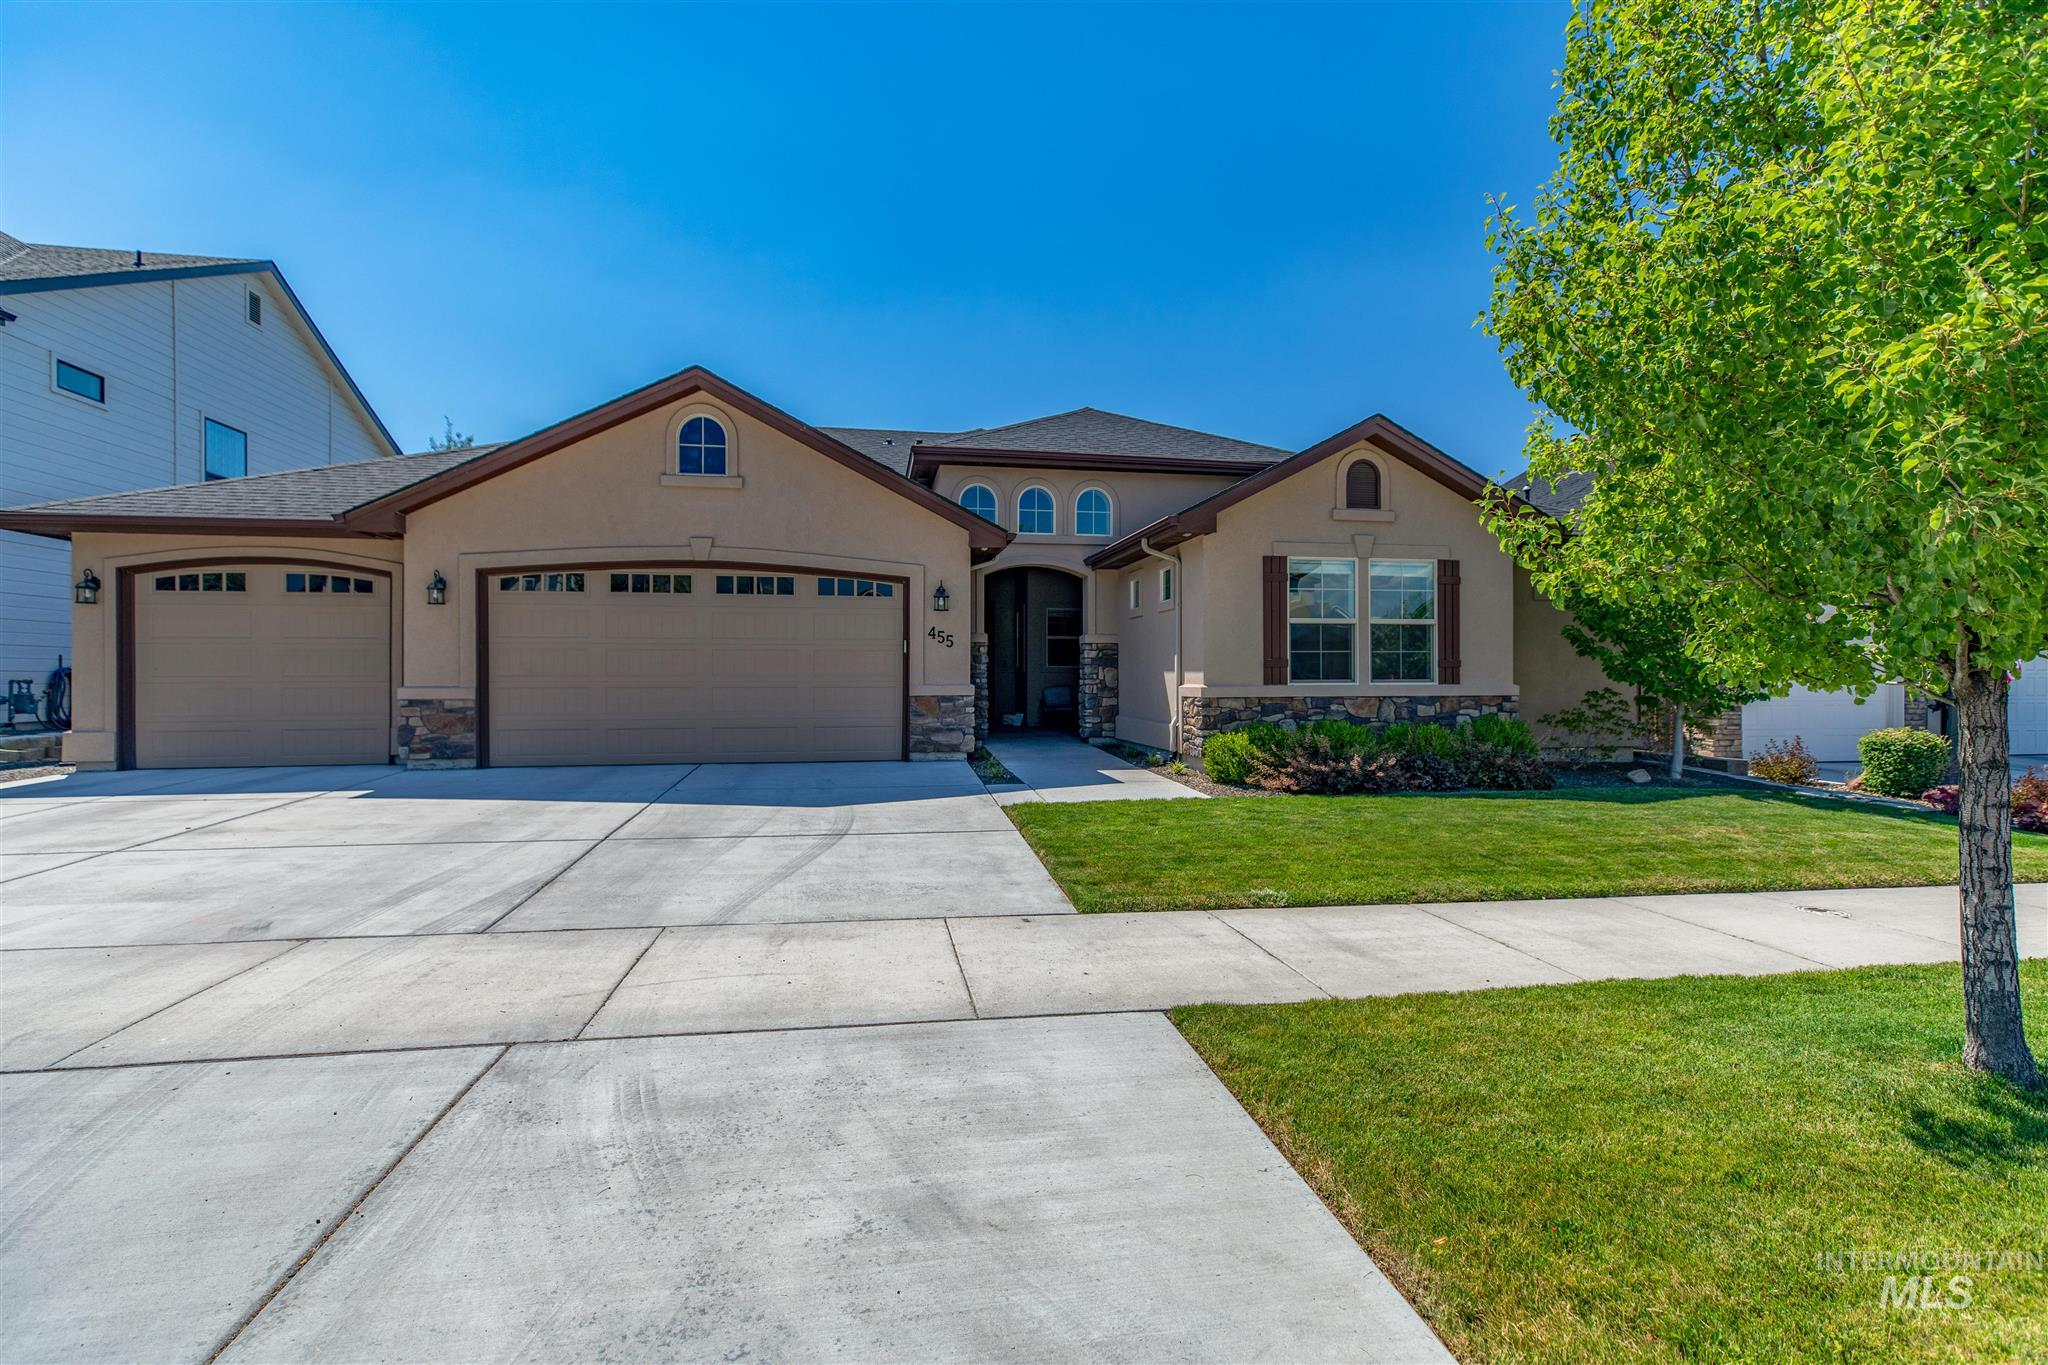 Beautifully maintained single level home in coveted Paramount! High ceilings, tall windows & crown molding are only some of the features that welcome you in. Open concept living spaces means never missing a beat entertaining in the gourmet kitchen w/custom cabinets & large island. Spacious 4th bedroom could be a rec-room. Relax on the oversized covered patio & enjoy the wildflower garden. Home is only steps away from 1 of 4 neighborhood pools, walking distance to 3 neighborhood schools, gym & clubhouse.